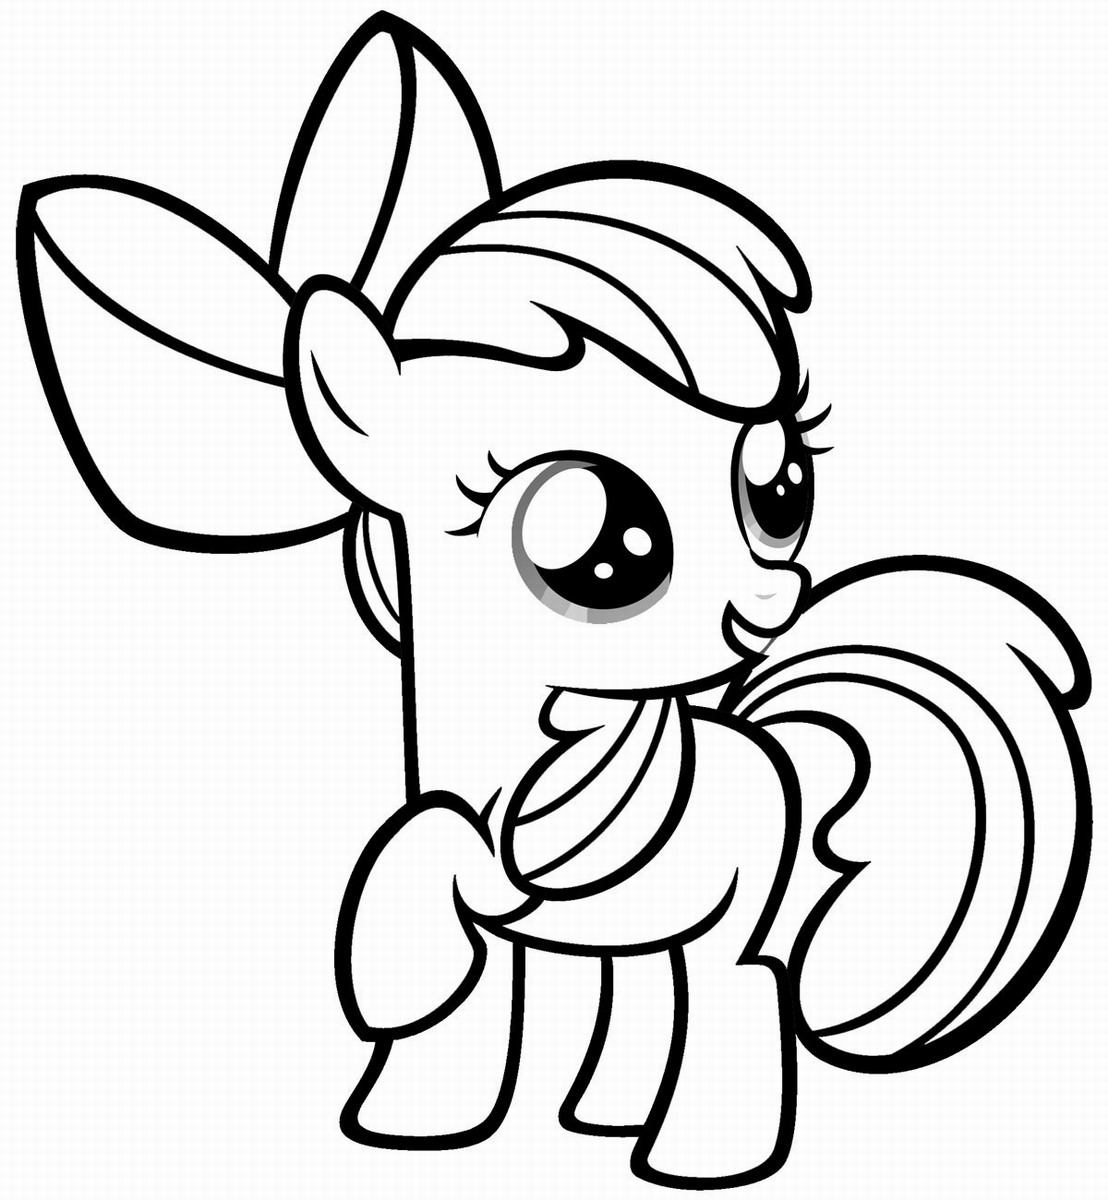 mlp coloring page my little pony the movie coloring pages to download and coloring mlp page